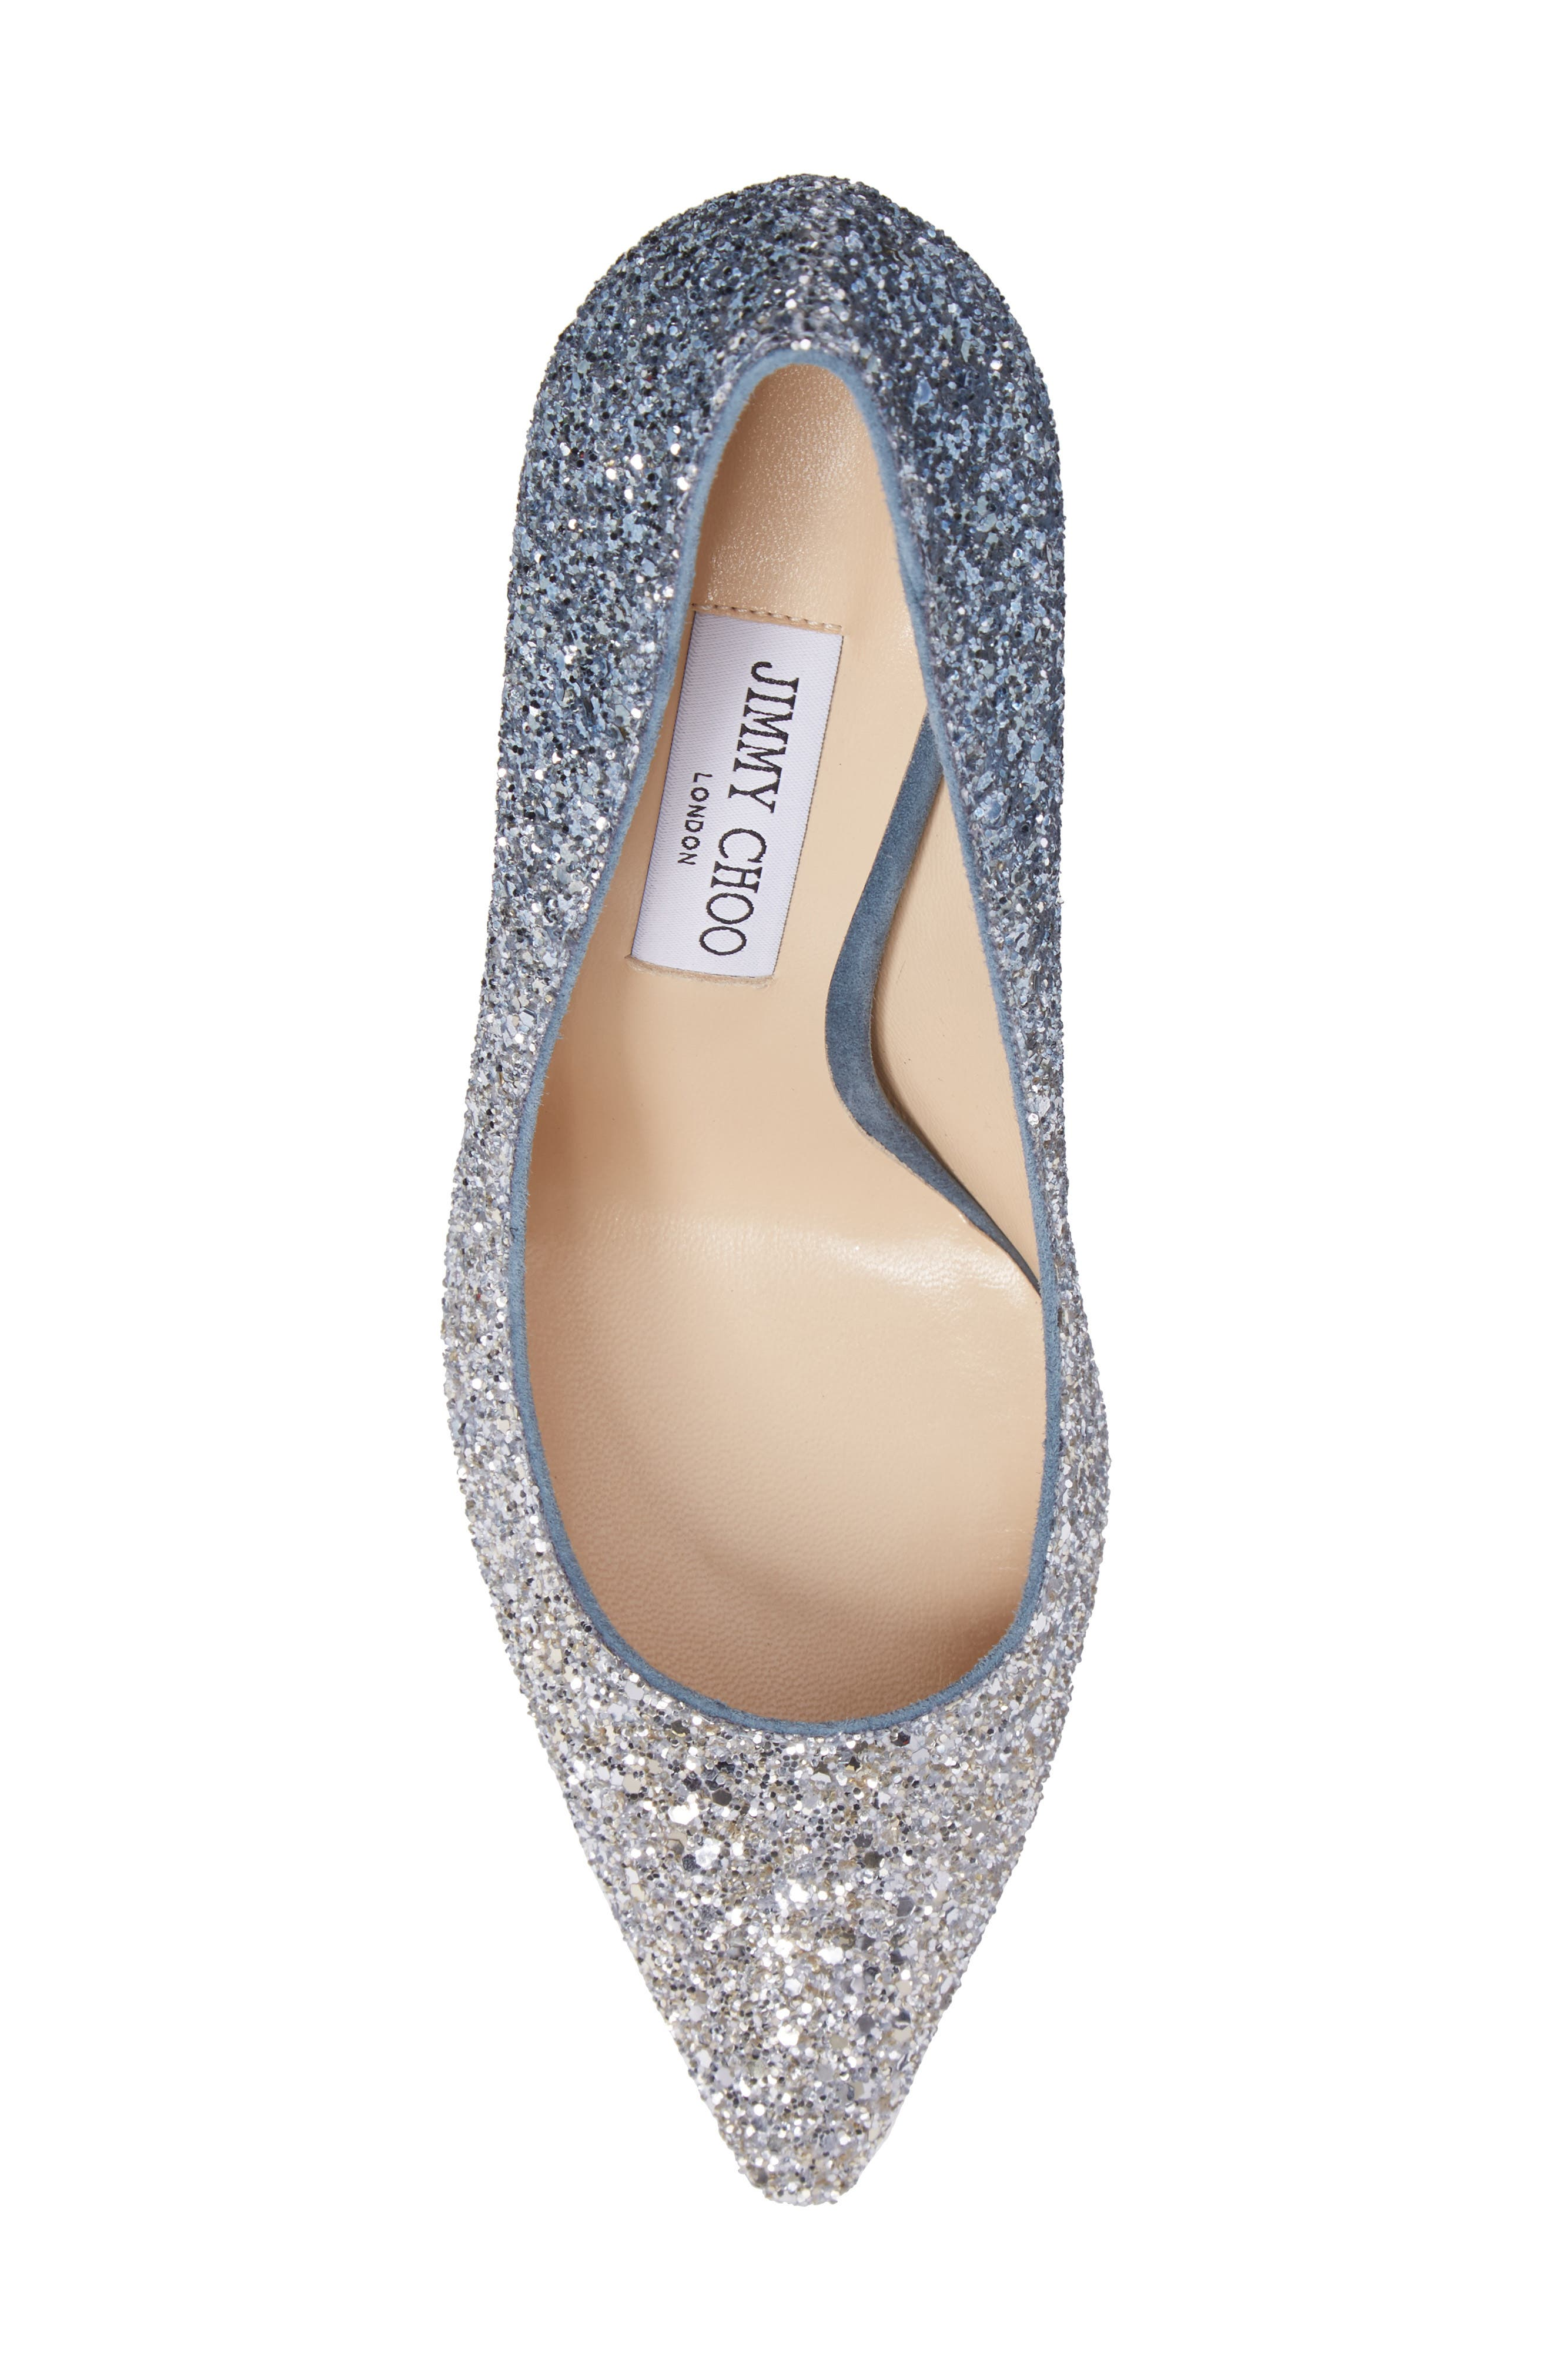 Romy Glitter Pump,                             Alternate thumbnail 6, color,                             Silver/ Dusk Blue